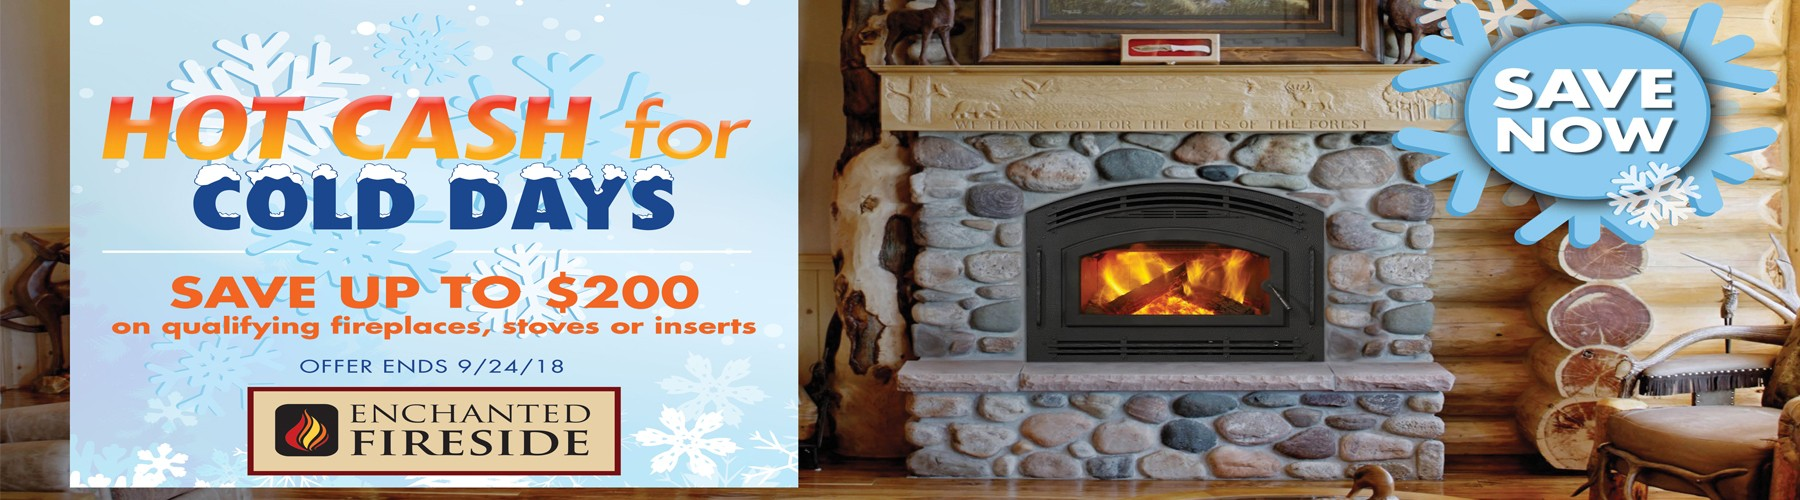 HHT Hot Cash for Cold Days Promo